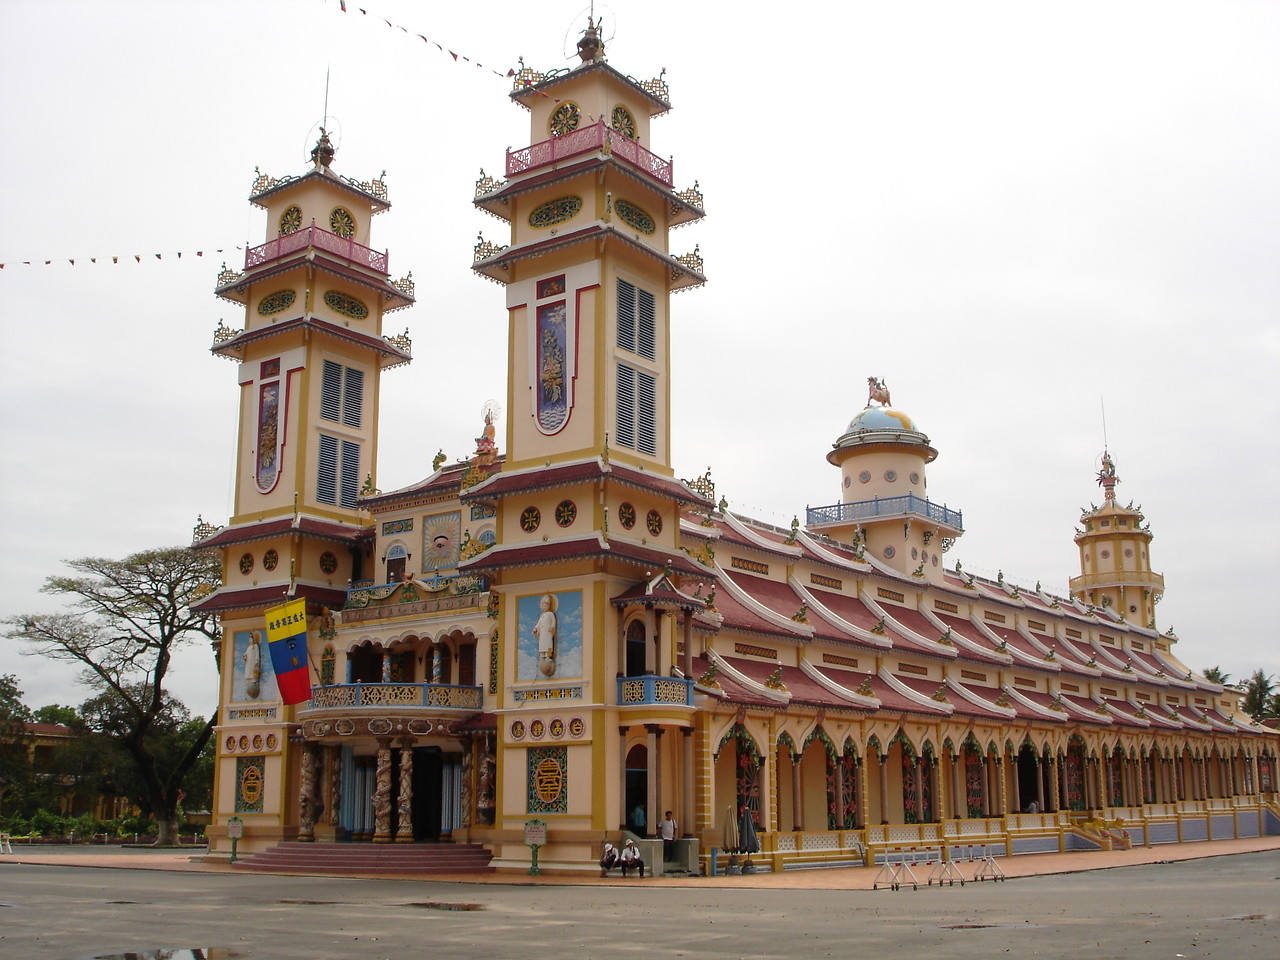 The Cao Dai Holy See Temple in Tay Ninh.